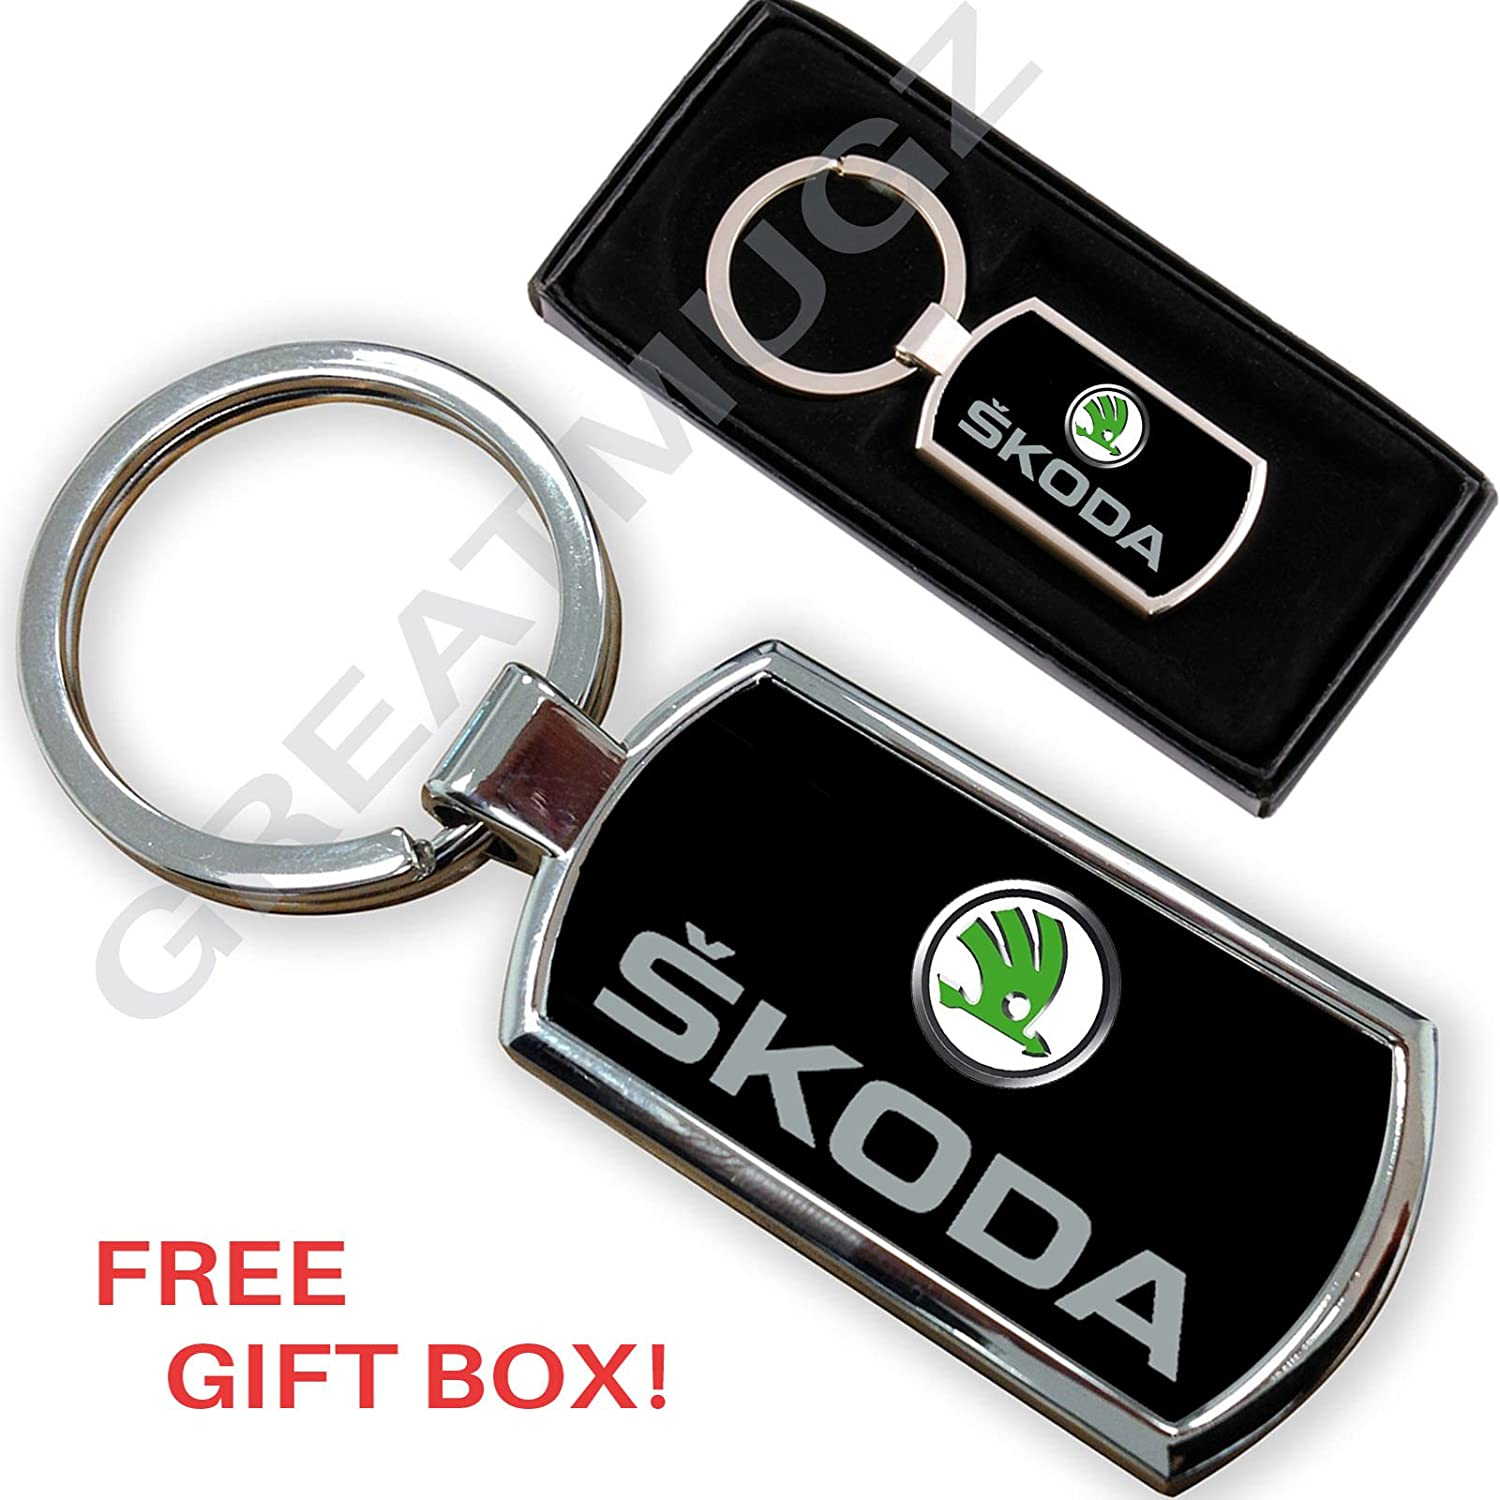 Cargifts SKODA KEYRING KEY RING CHROME METAL FOB